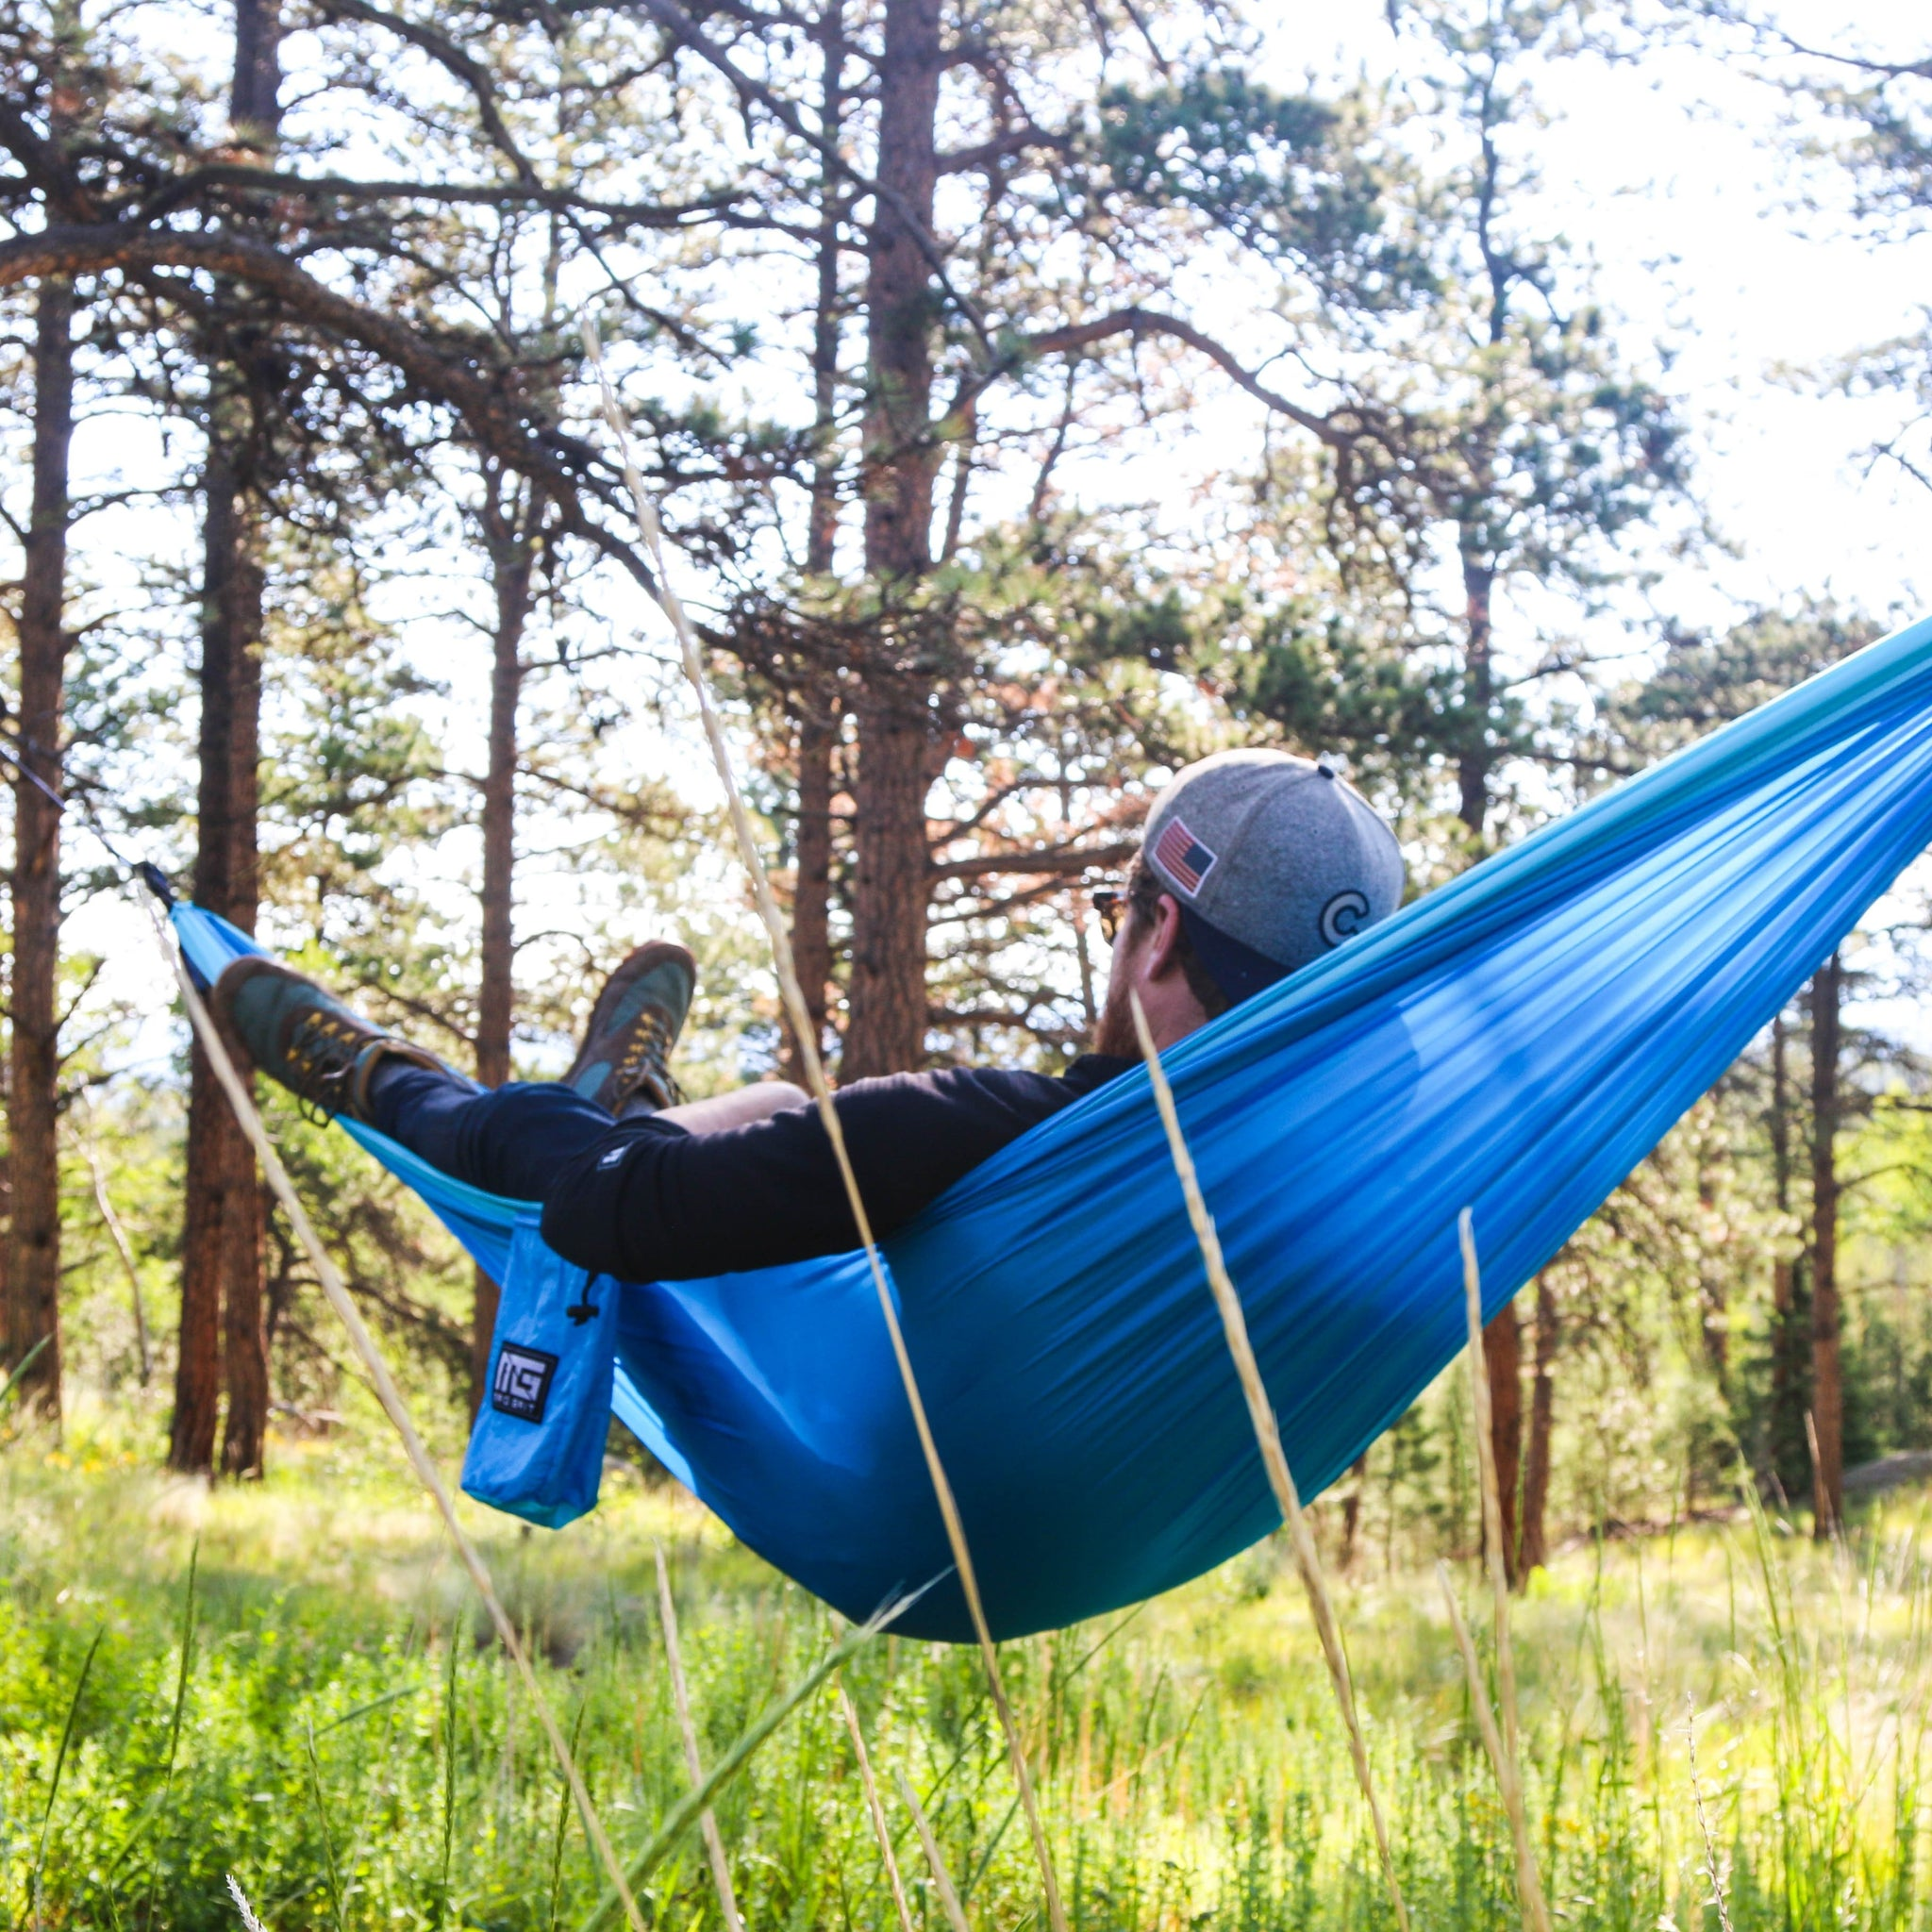 your for happiness the inspiration how ticket style camping blue sleeve to yellow parachute moon relax hammock trees need royal view dark gallery